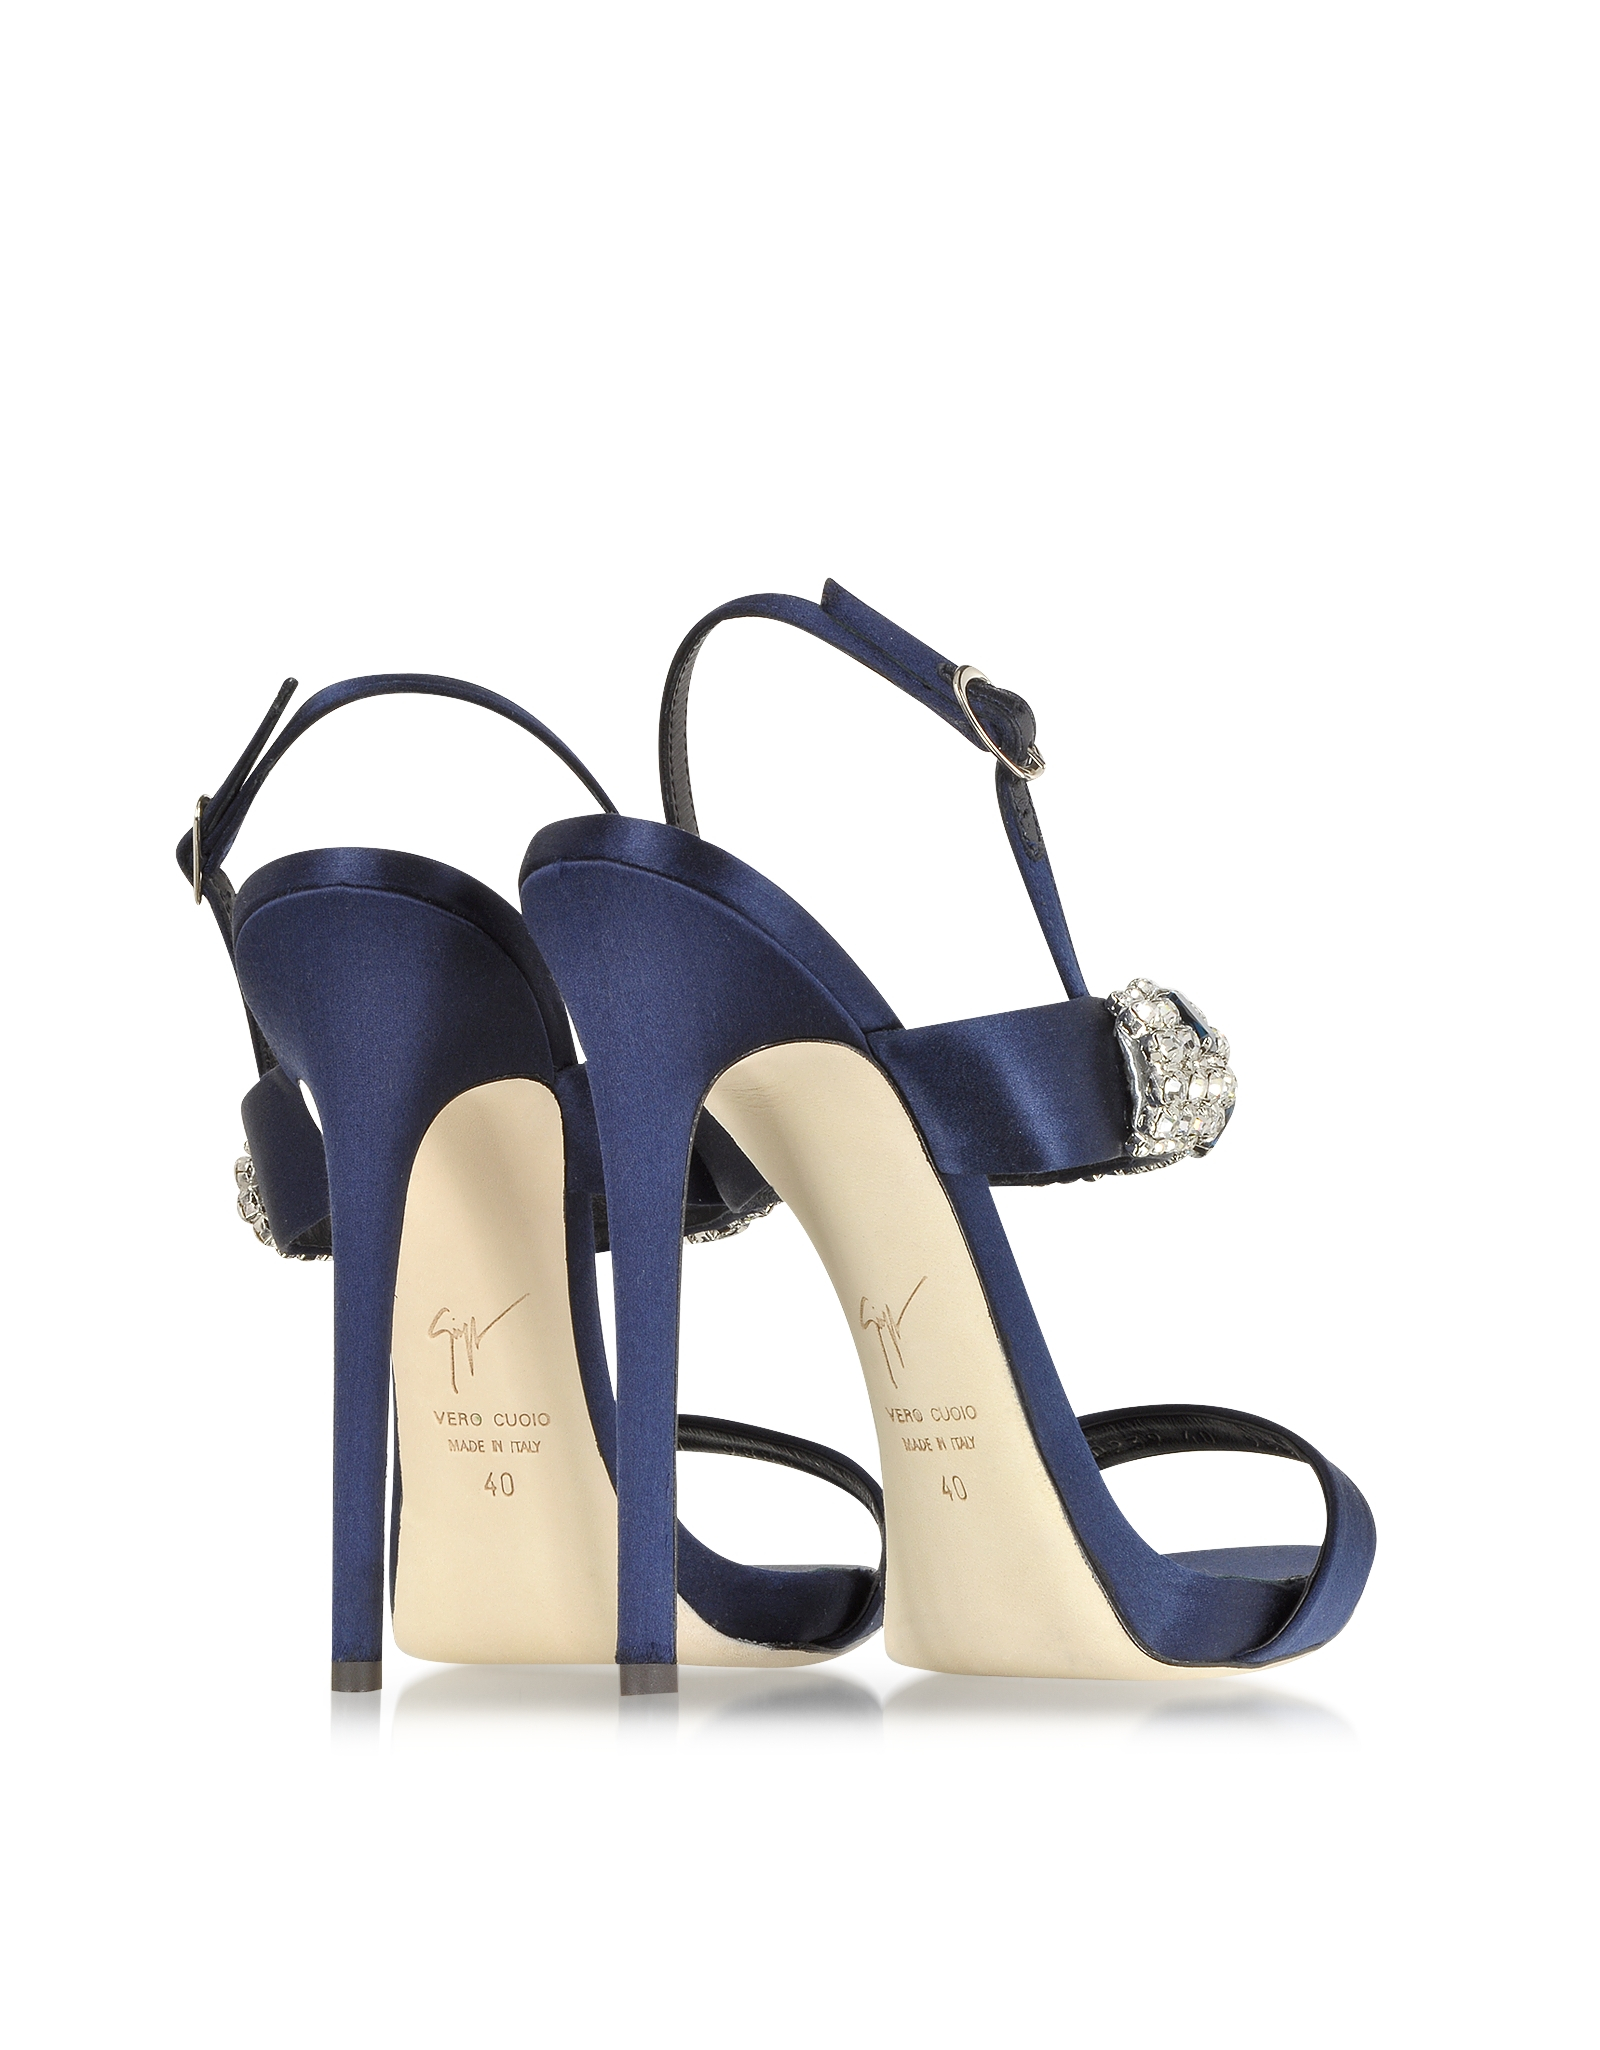 01a3593db7fb Lyst - Giuseppe Zanotti Navy Satin   Crystal High Heel Sandal in Blue